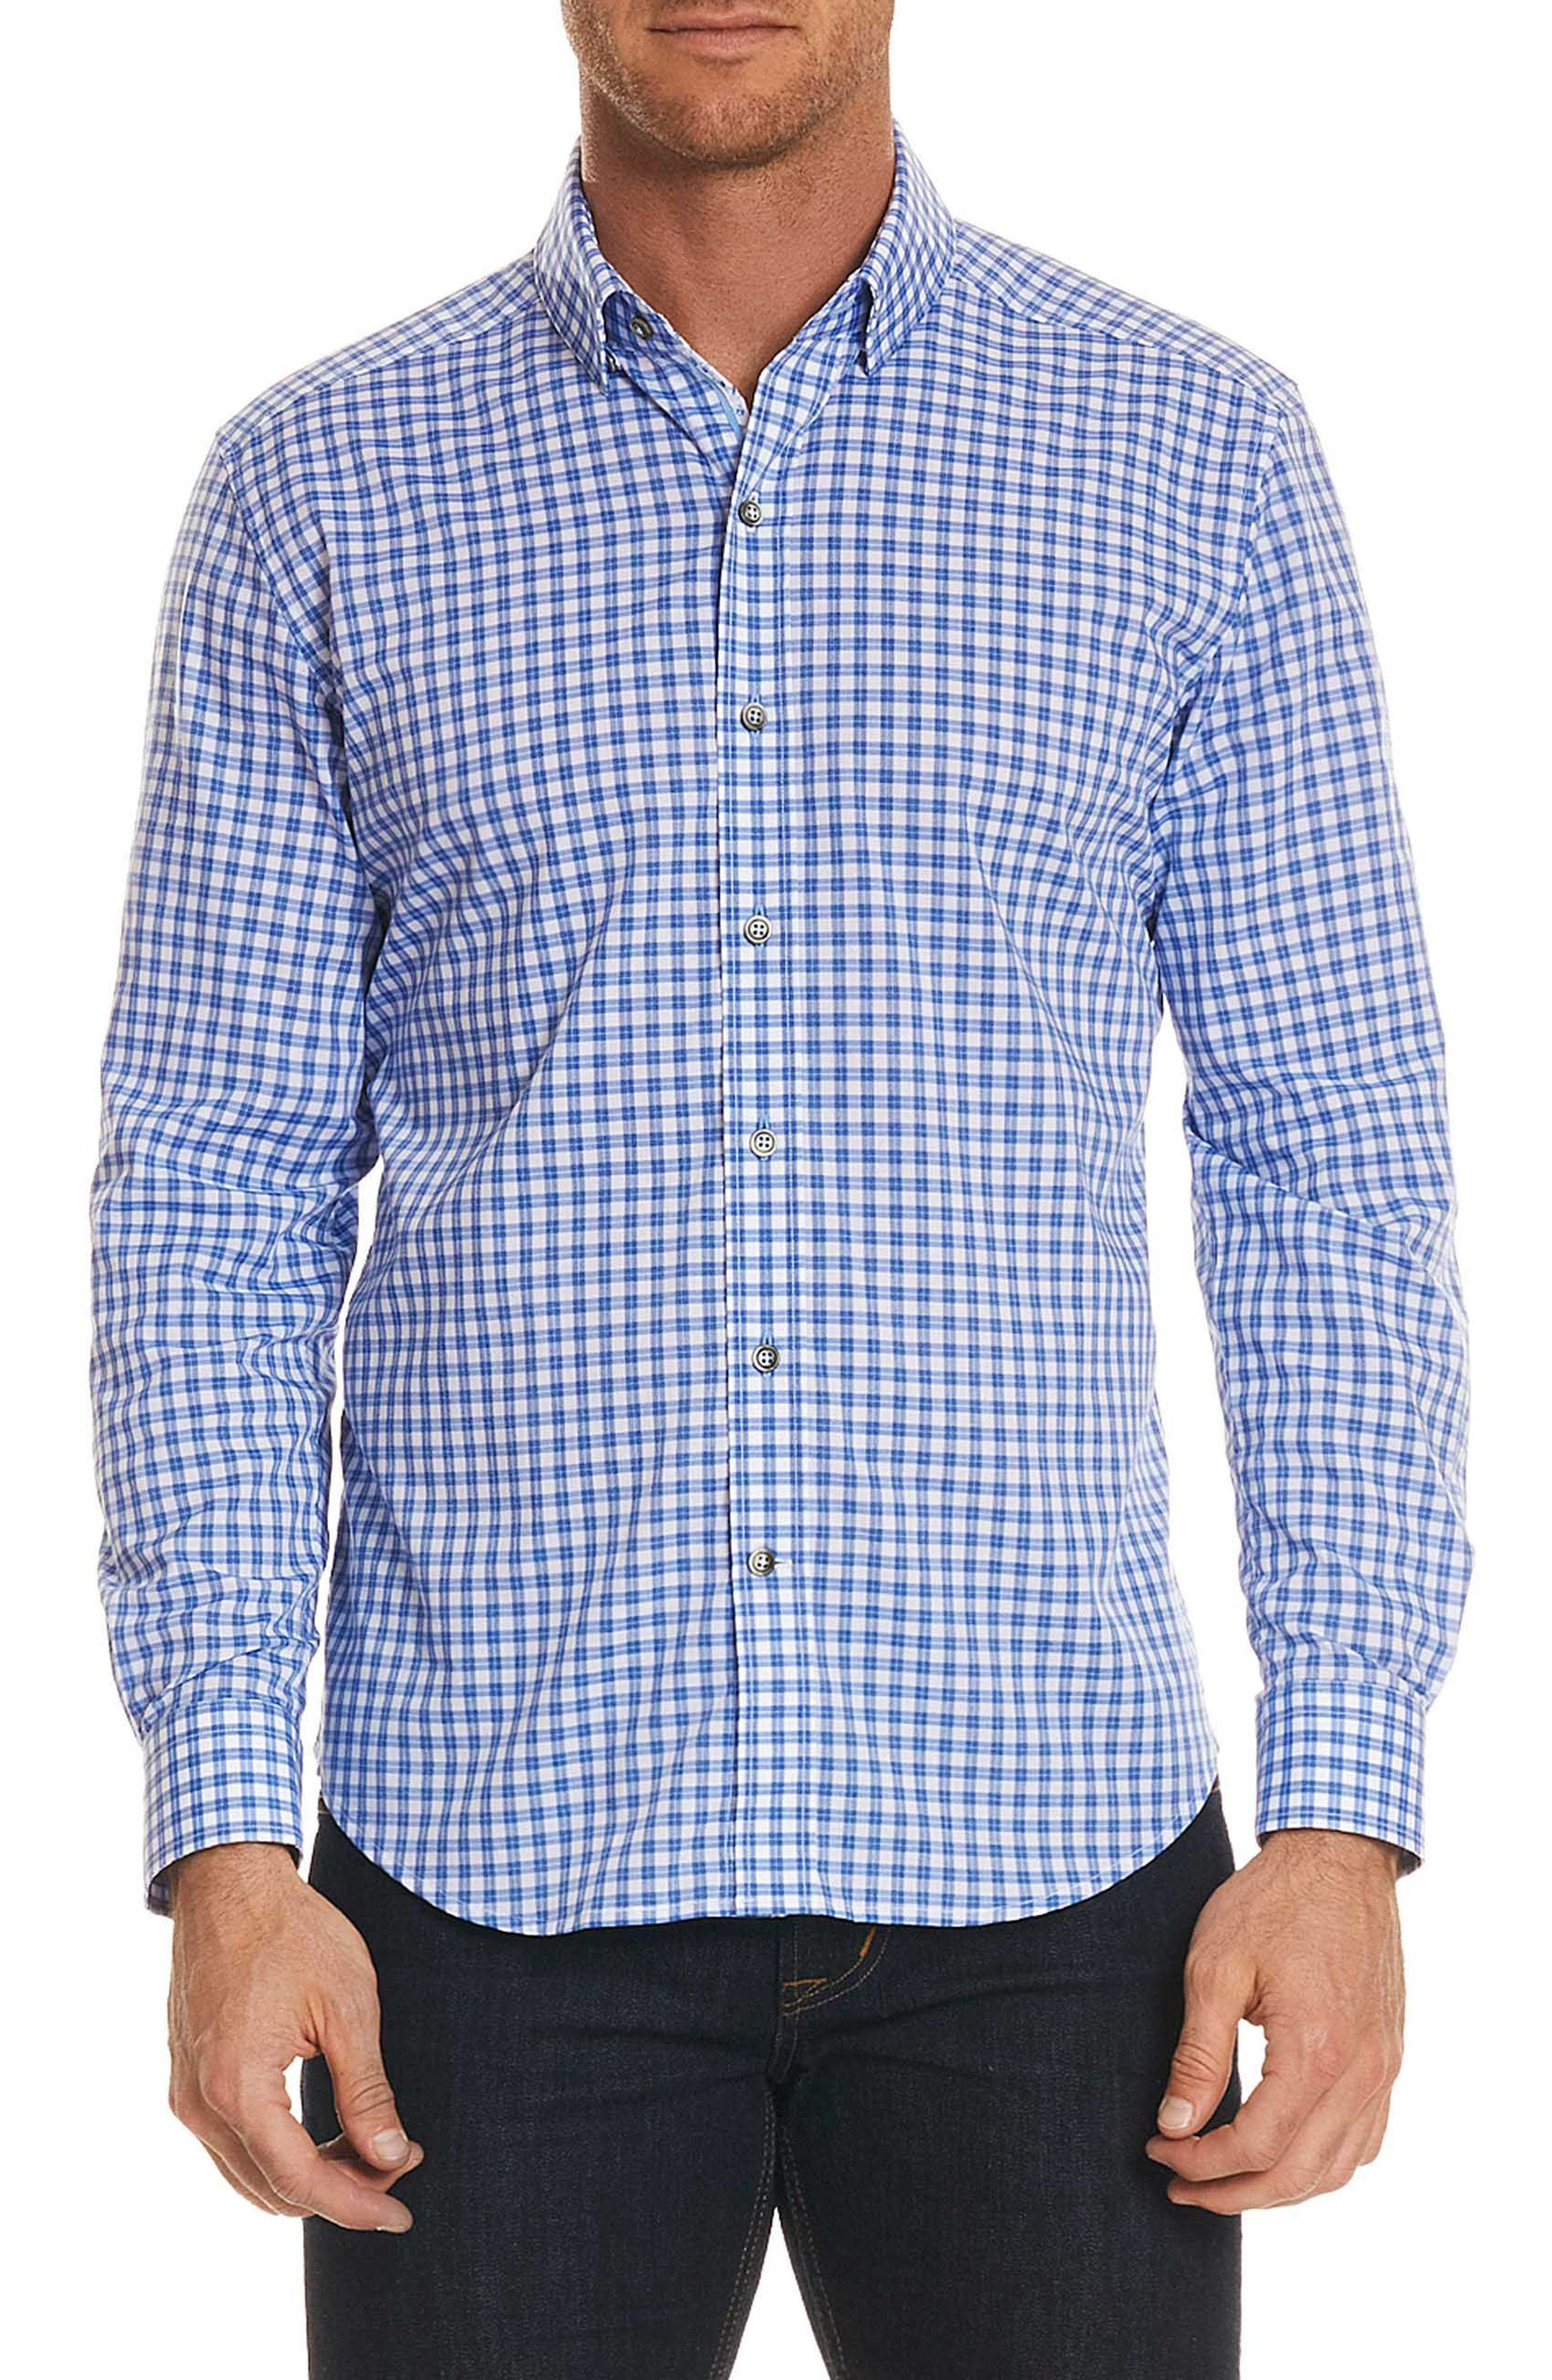 Rye Tailored Fit Check Sport Shirt,                             Main thumbnail 1, color,                             400